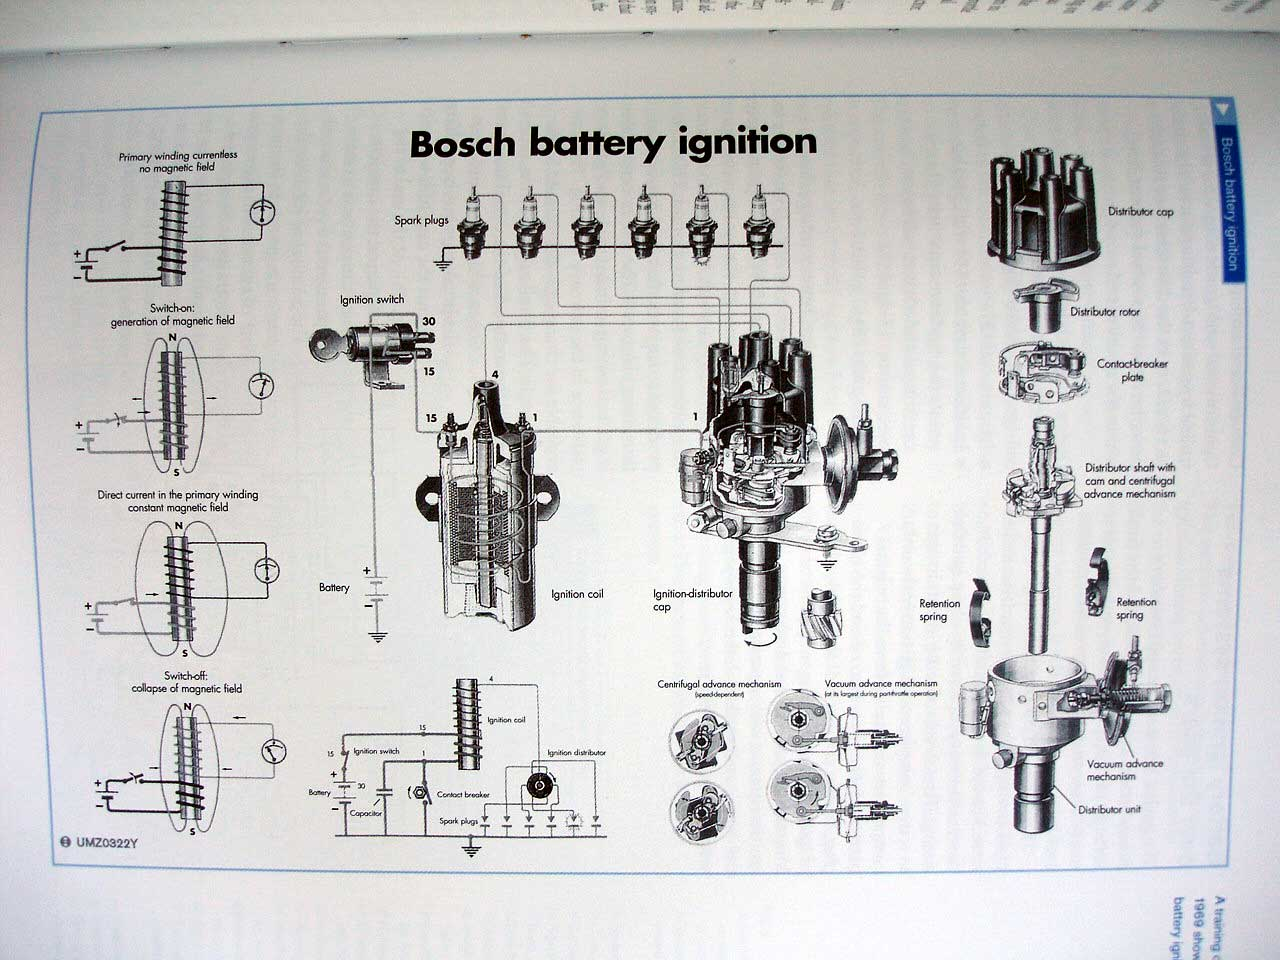 BoschBatteryIgnition understanding the ignition system vw beetle electronic ignition wiring diagram at bayanpartner.co